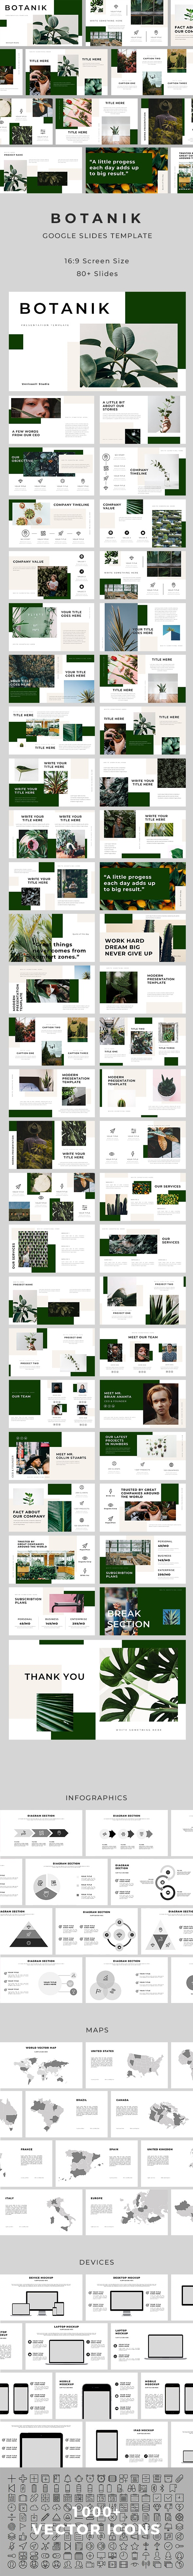 Botanik Google Slides Template - Google Slides Presentation Templates